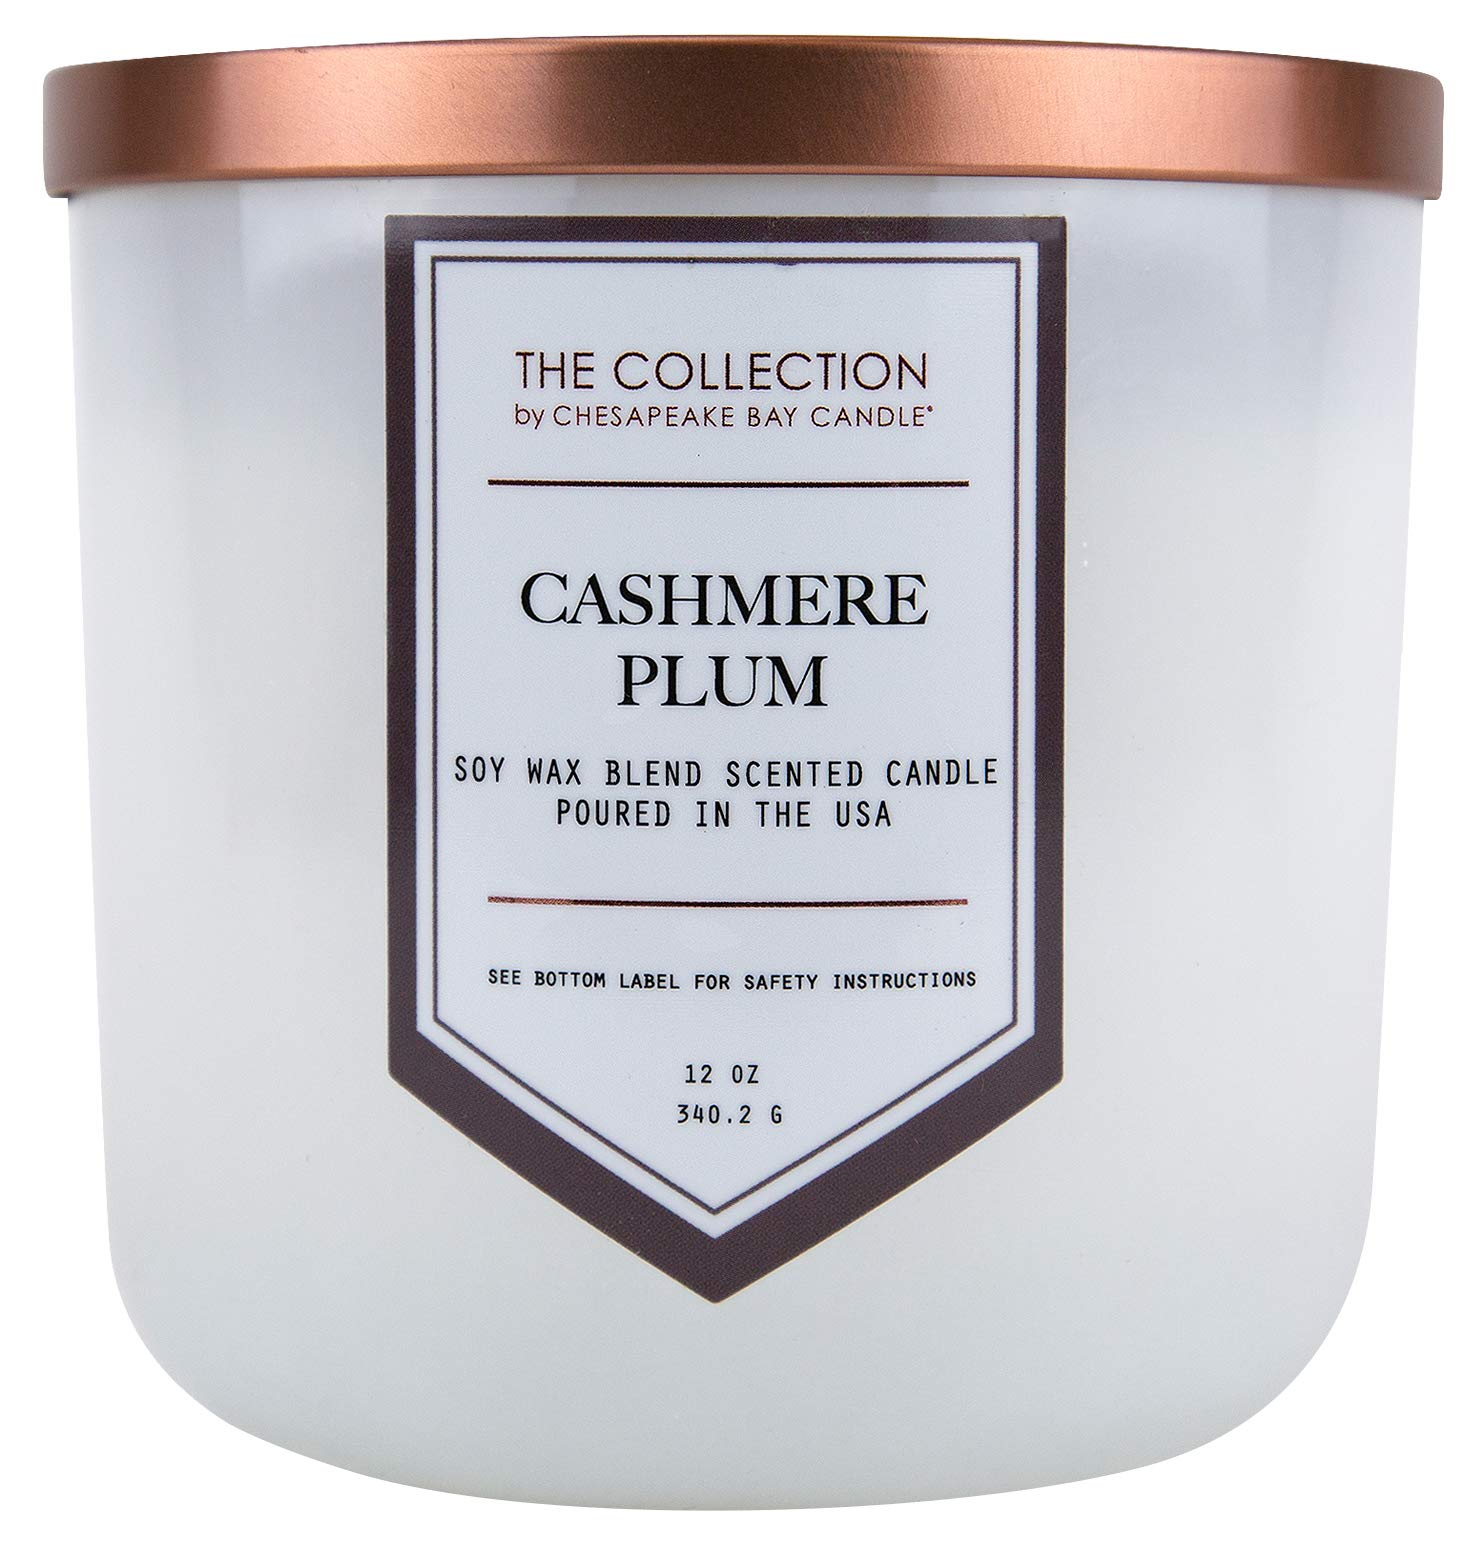 Chesapeake Bay Candle The Collection Two-Wick Scented Candle, Cashmere Plum